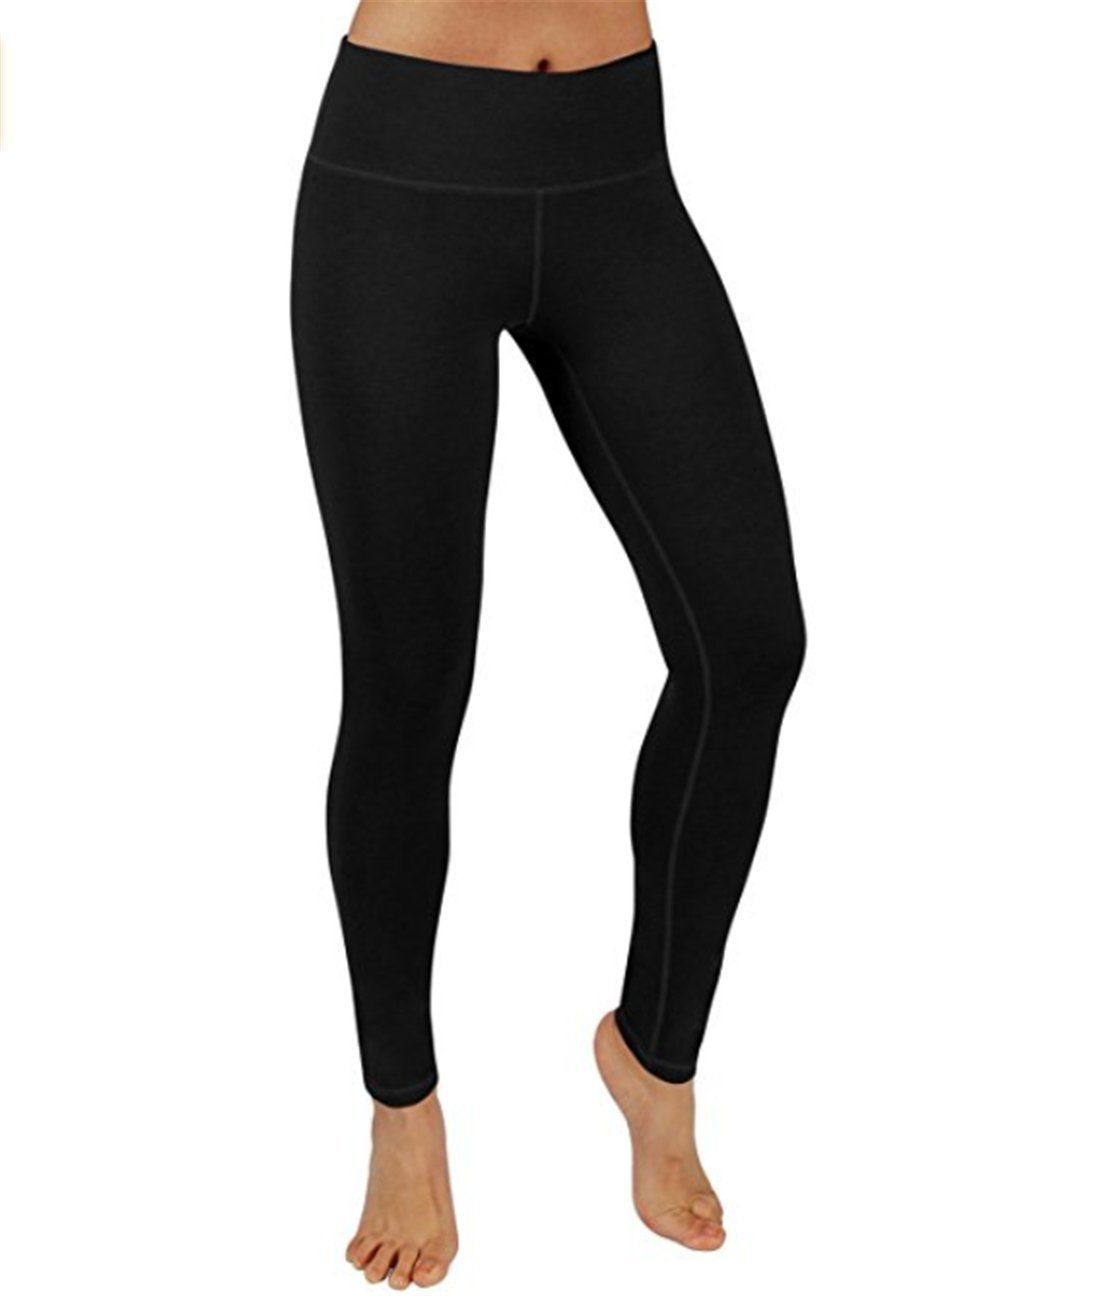 4813076149 Viger Plus Fold-Over Waistband Stretchy Cotton Blend Yoga Pants Black S. 88%